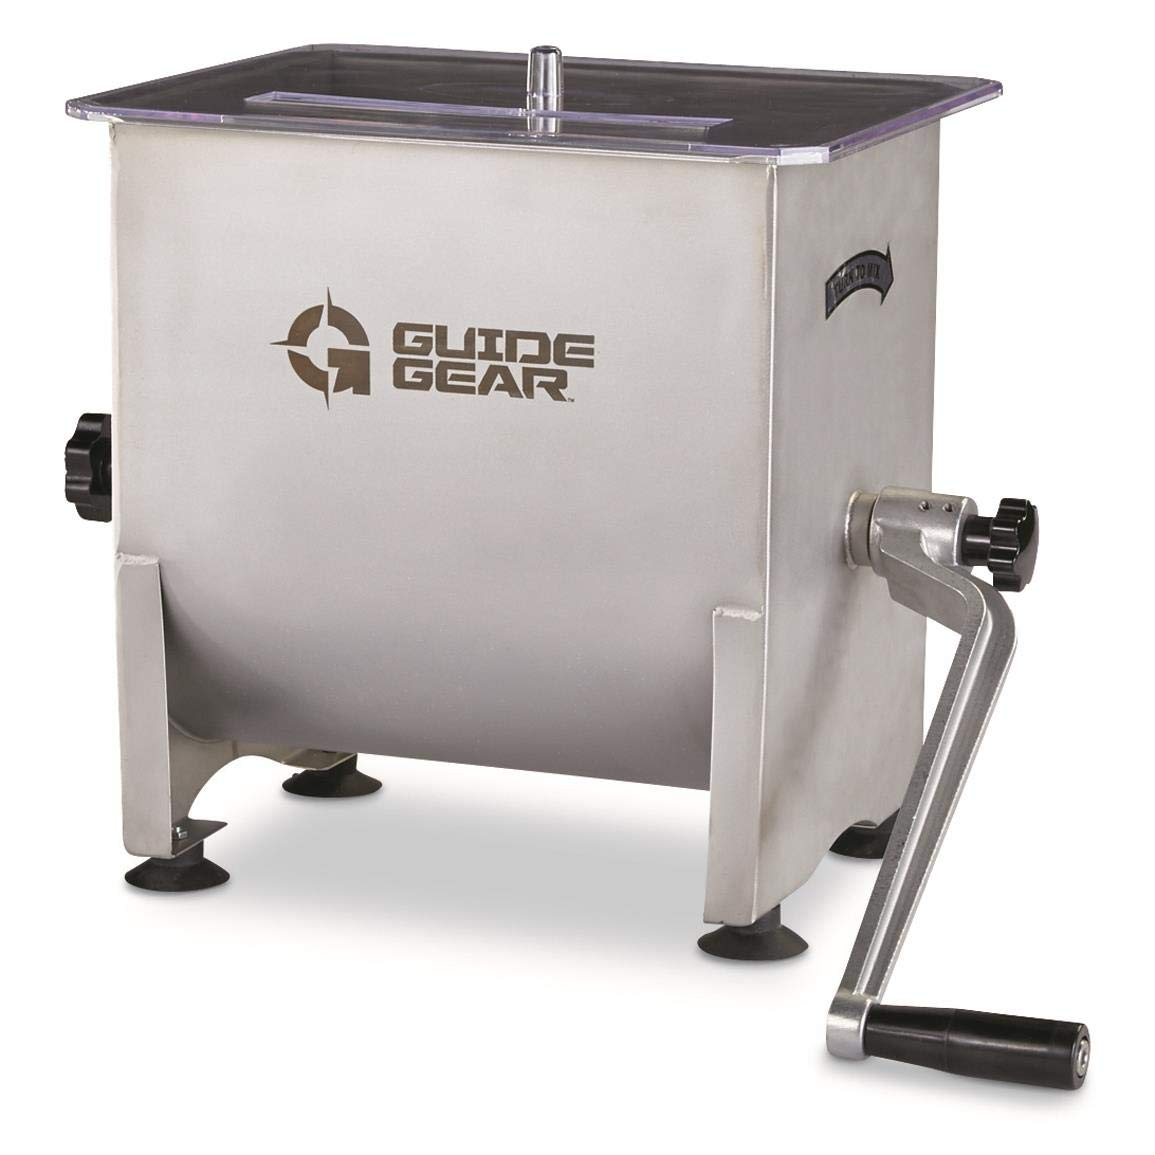 Guide Gear Stainless Steel Meat Mixer, 4.2 Gallon Capacity by Guide Gear